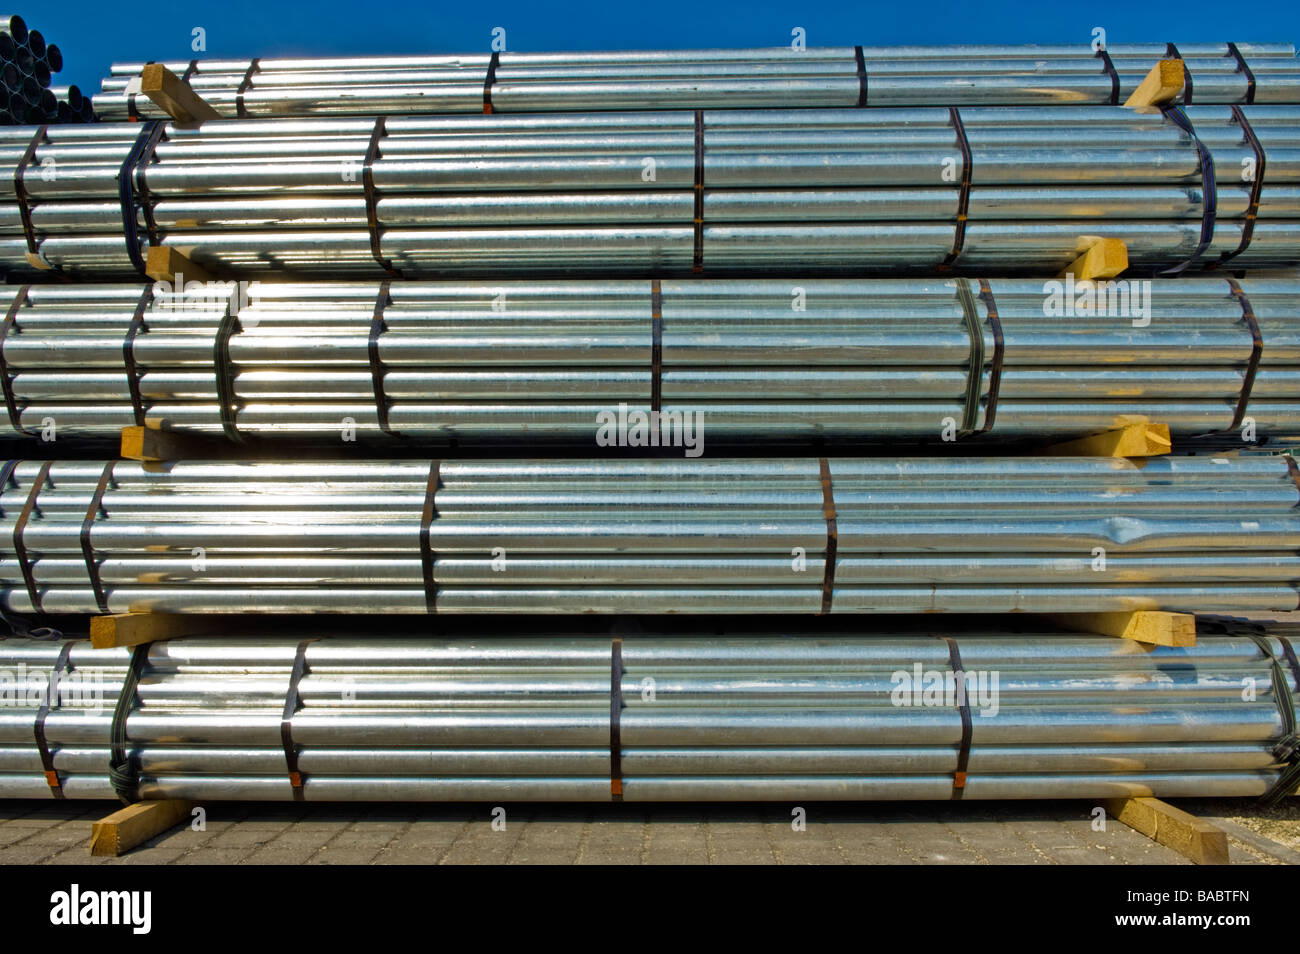 pipework plumbing iron steel tube pipe duct tubes in mill lengths sell seller stor storage industry trade tarding - Stock Image